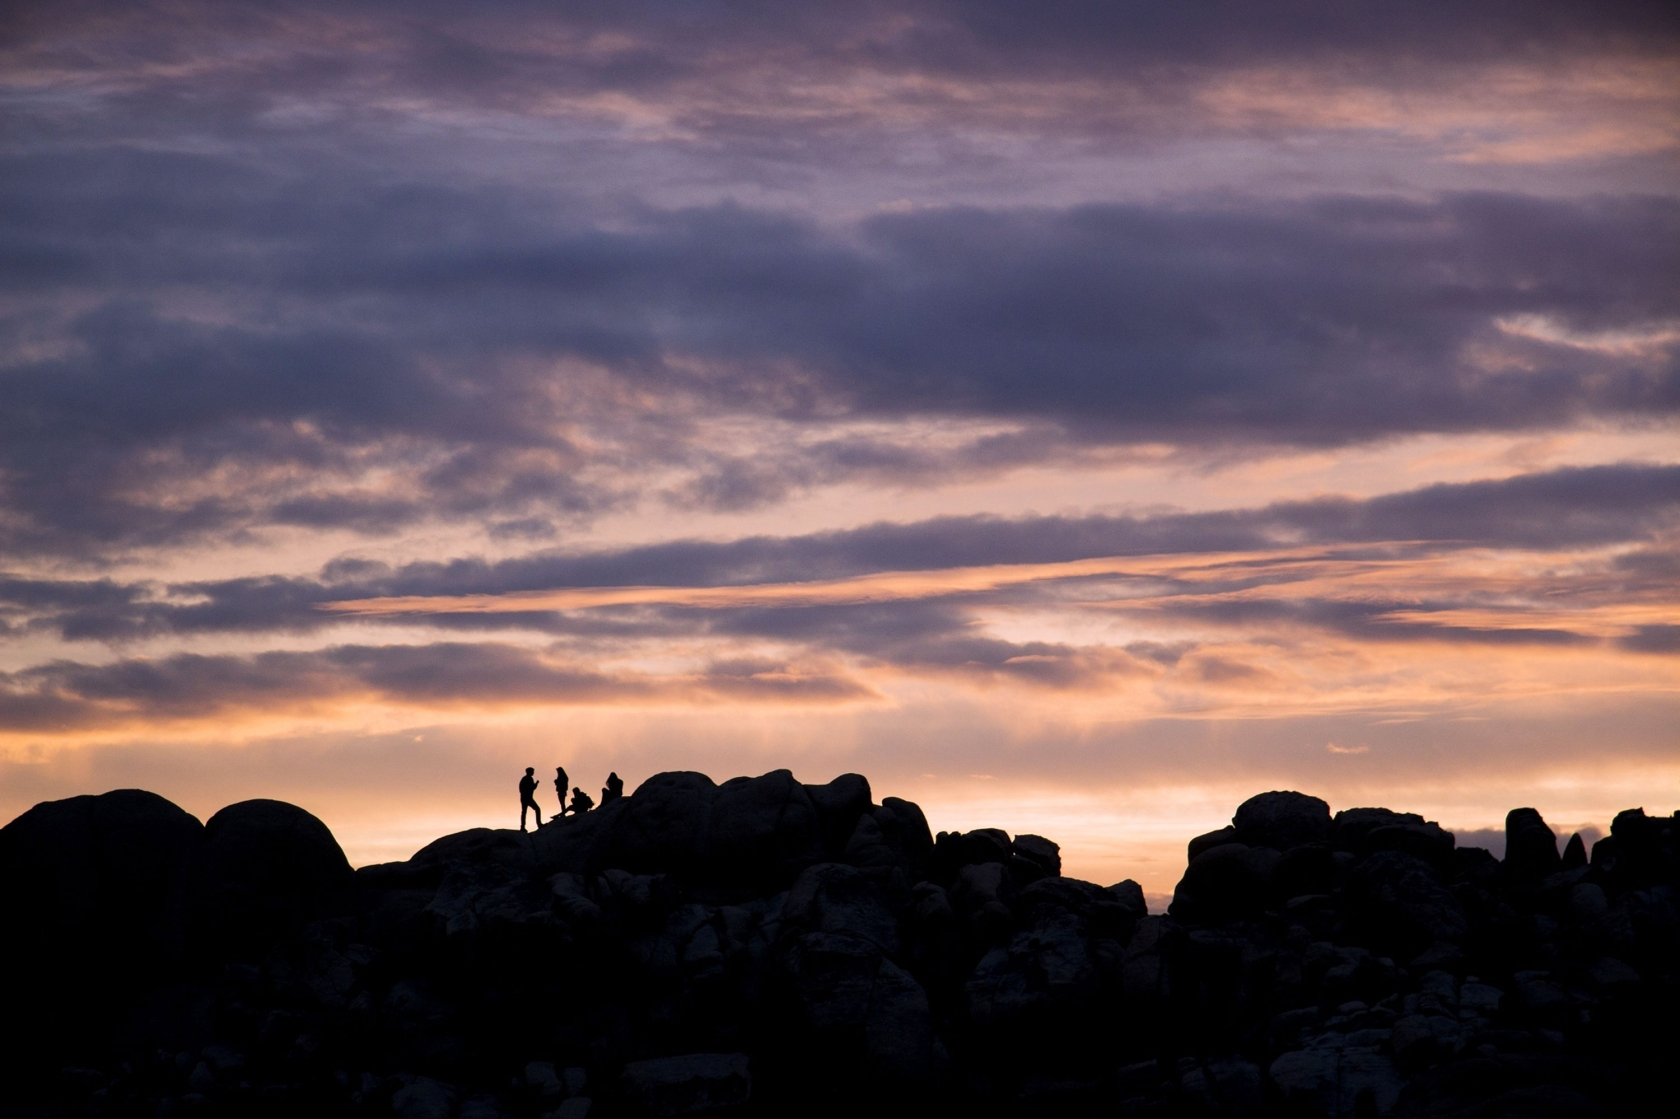 Taking in the sunset at Joshua Tree National Park